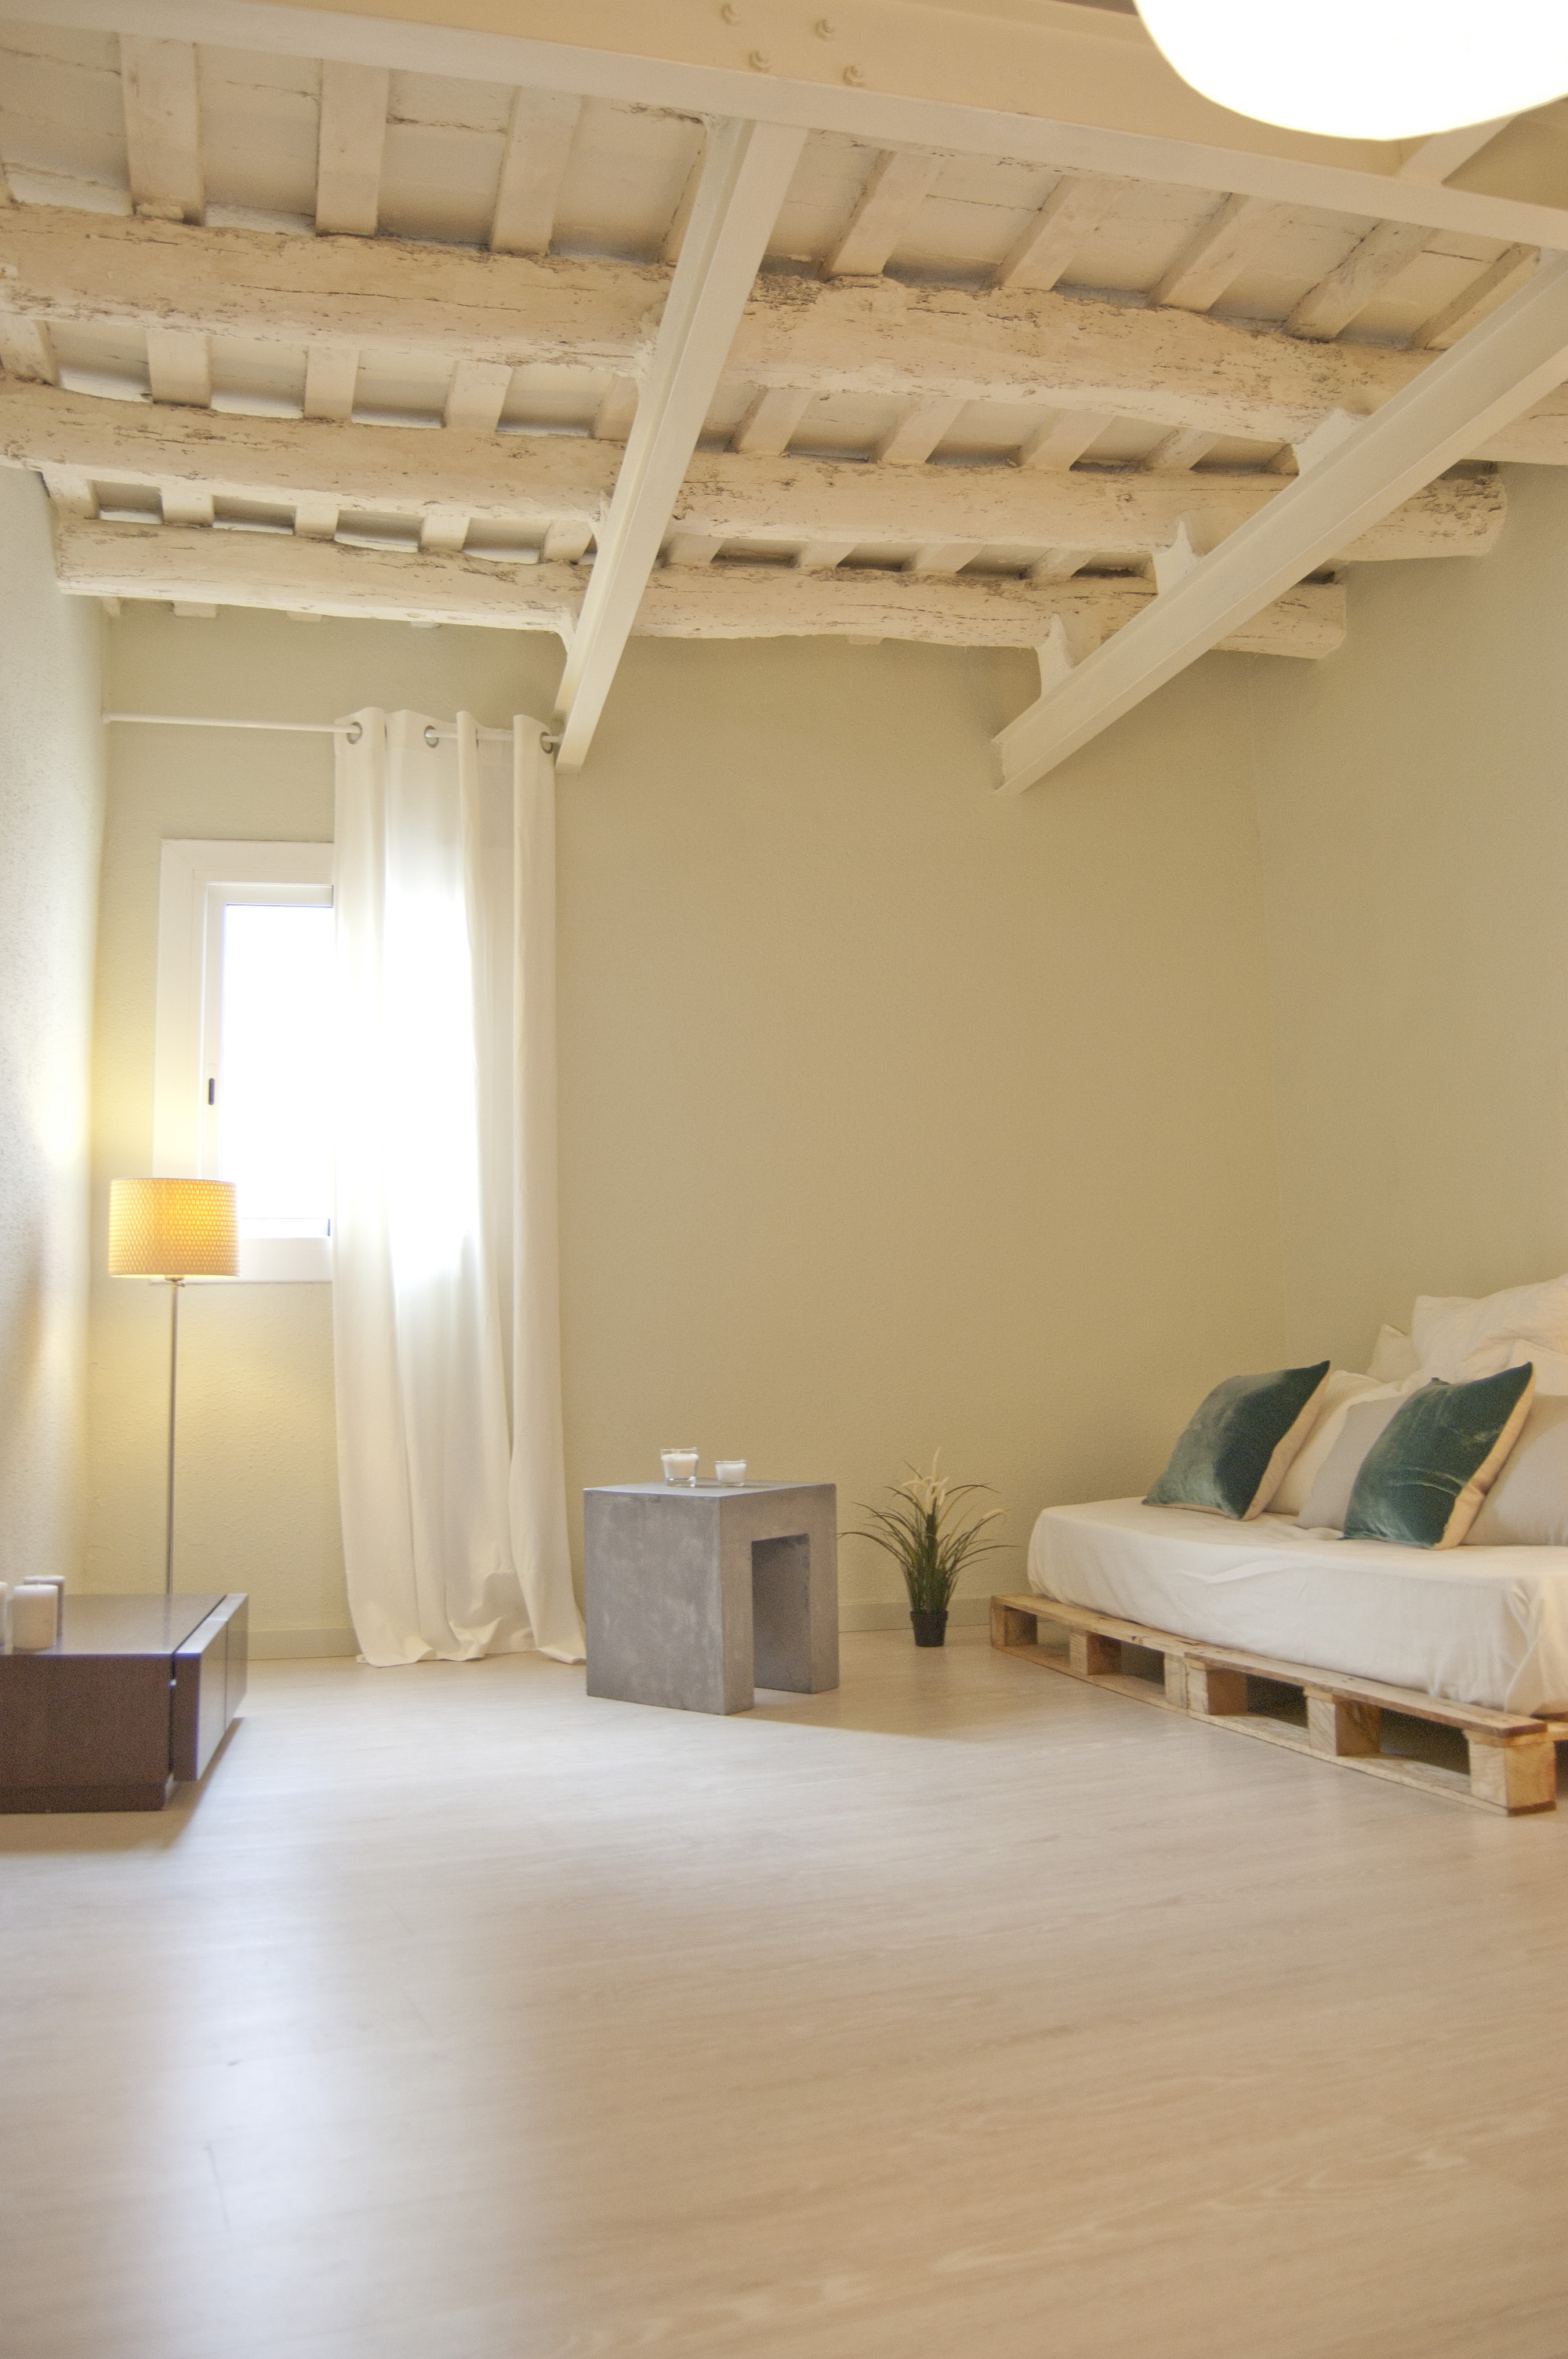 Trazo interiorismo home staging 22m for Interiorismo low cost barcelona